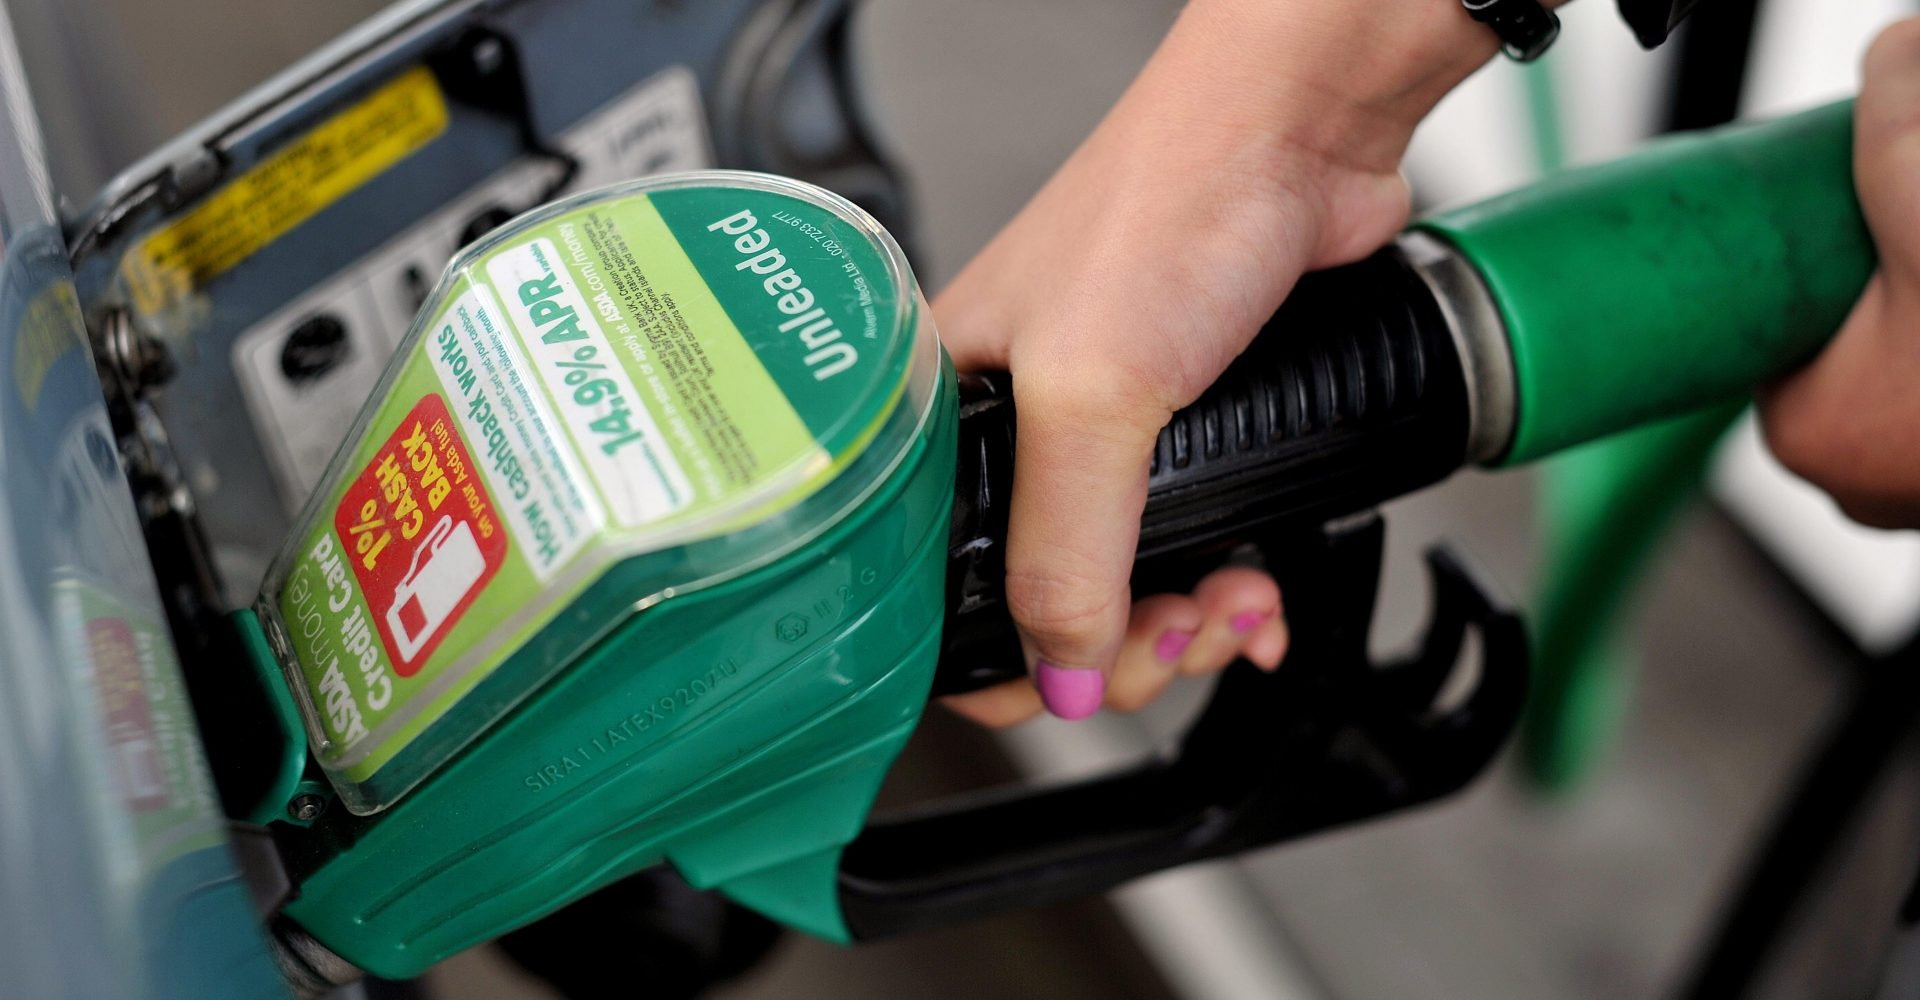 Average petrol price decreases for third month in a row